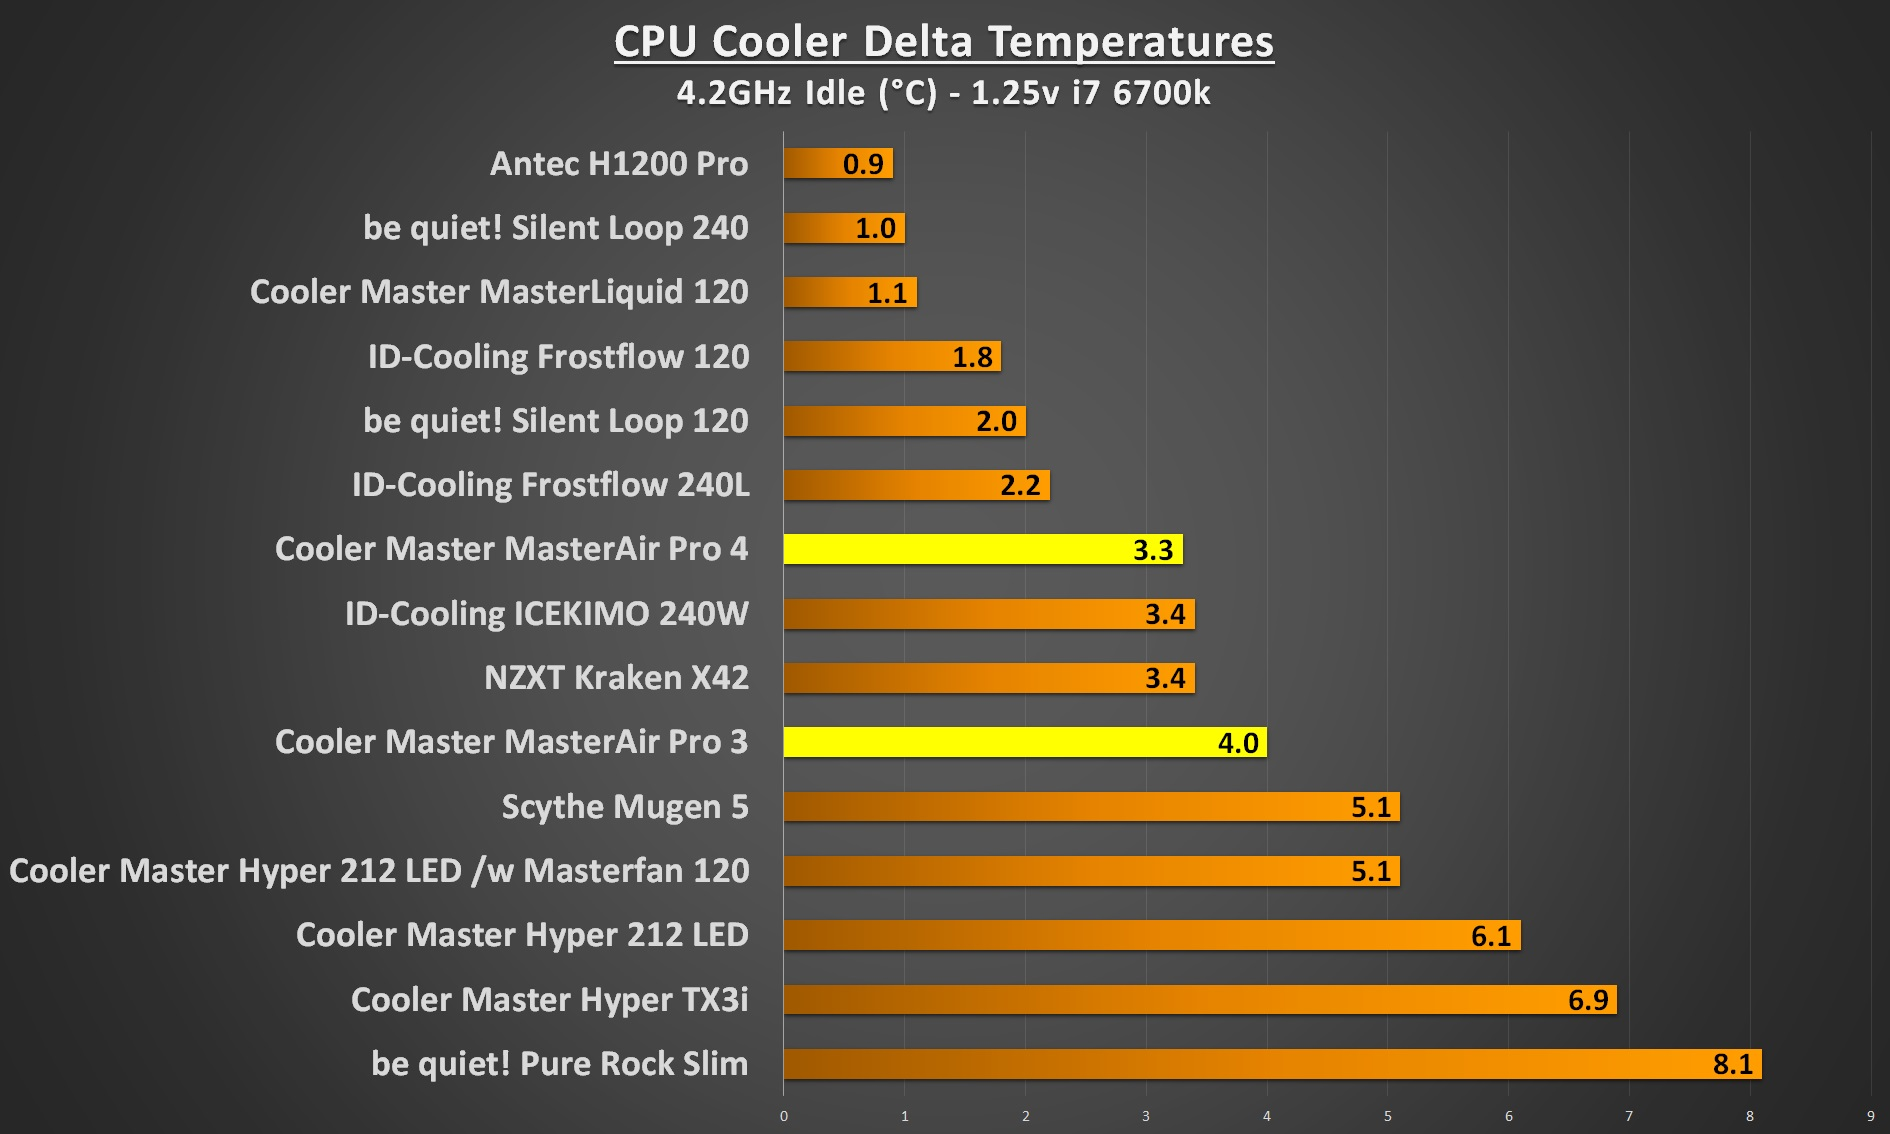 cooler master masterair pro 4.2Ghz idle